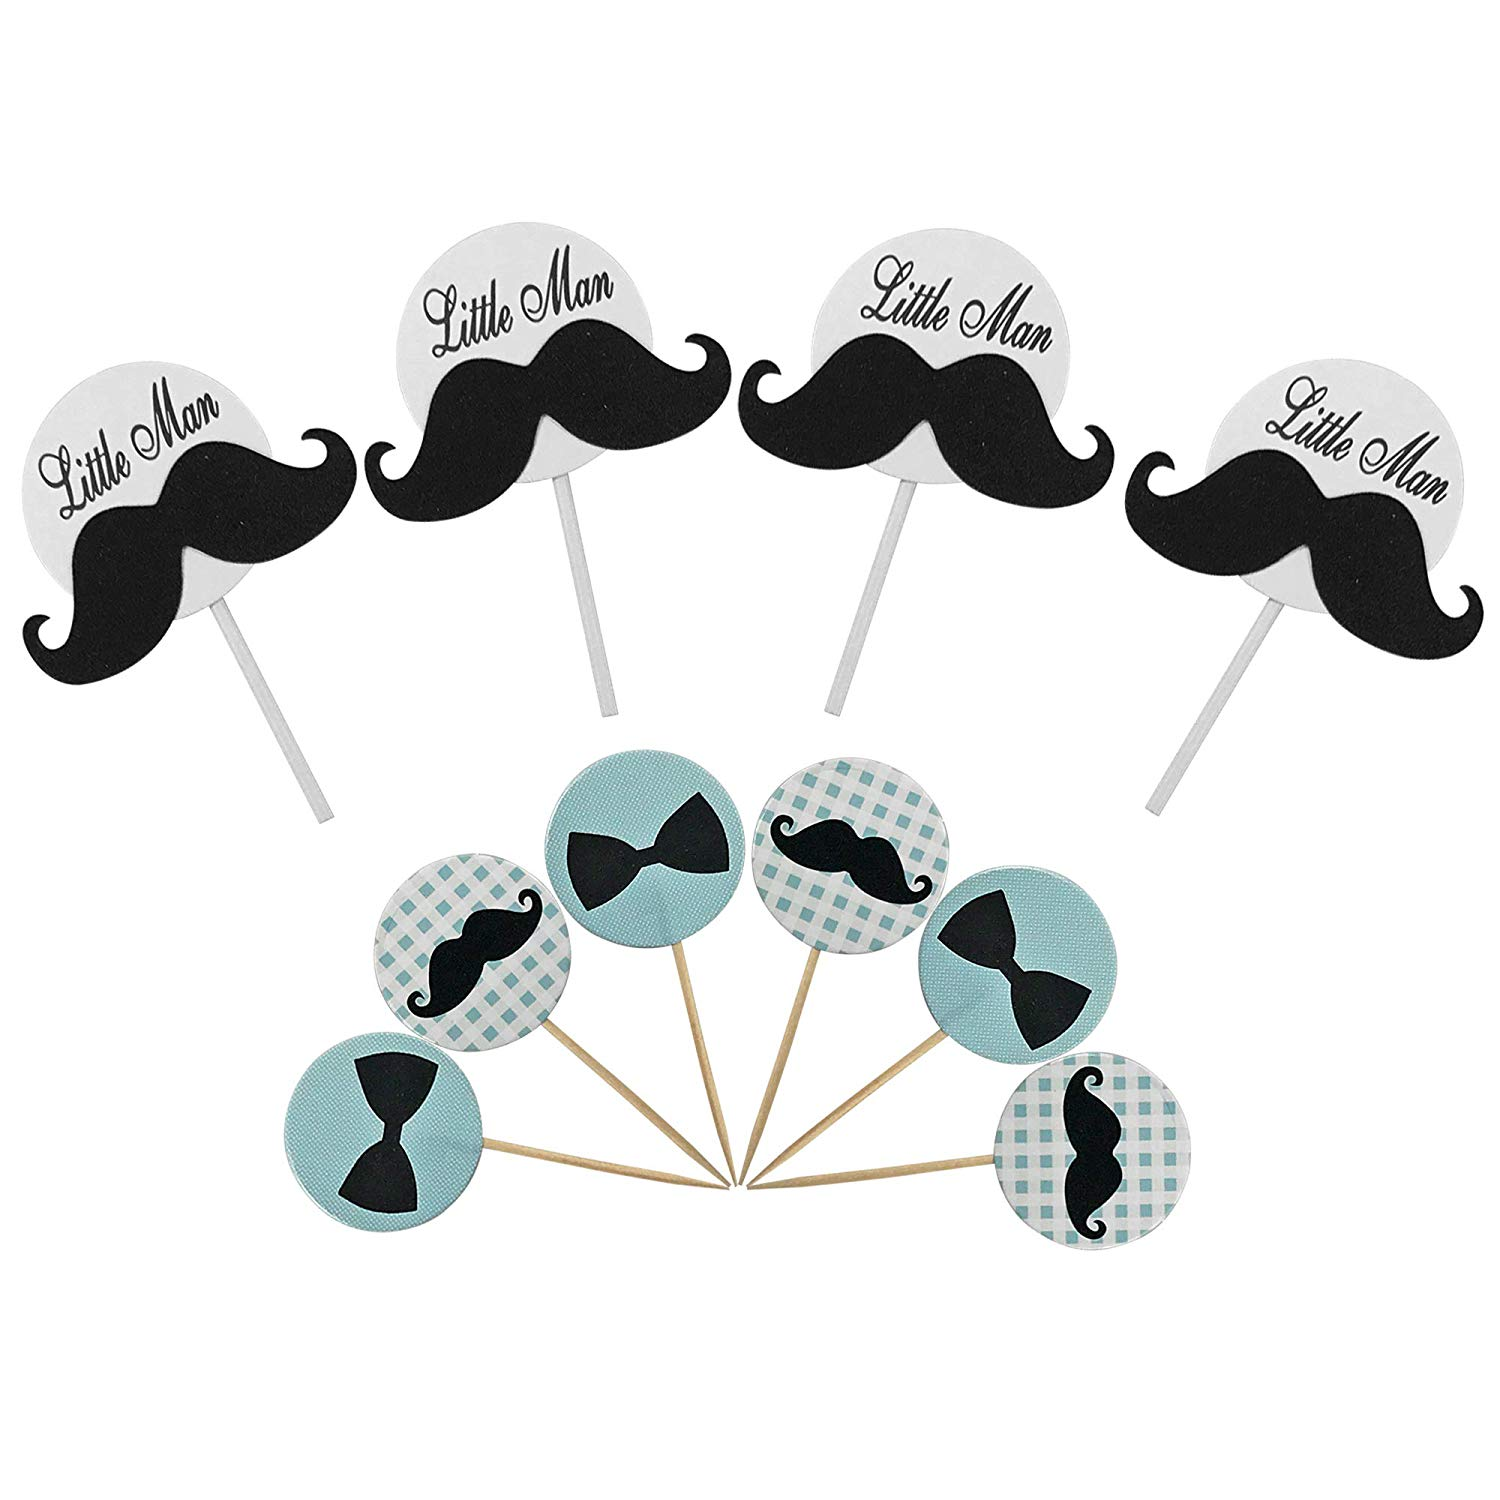 Little Man Mustache Bowtie Cake Cupcake Toppers Picks for Wedding Birthday Baby Shower Kids' Party Decorations 28 PCS